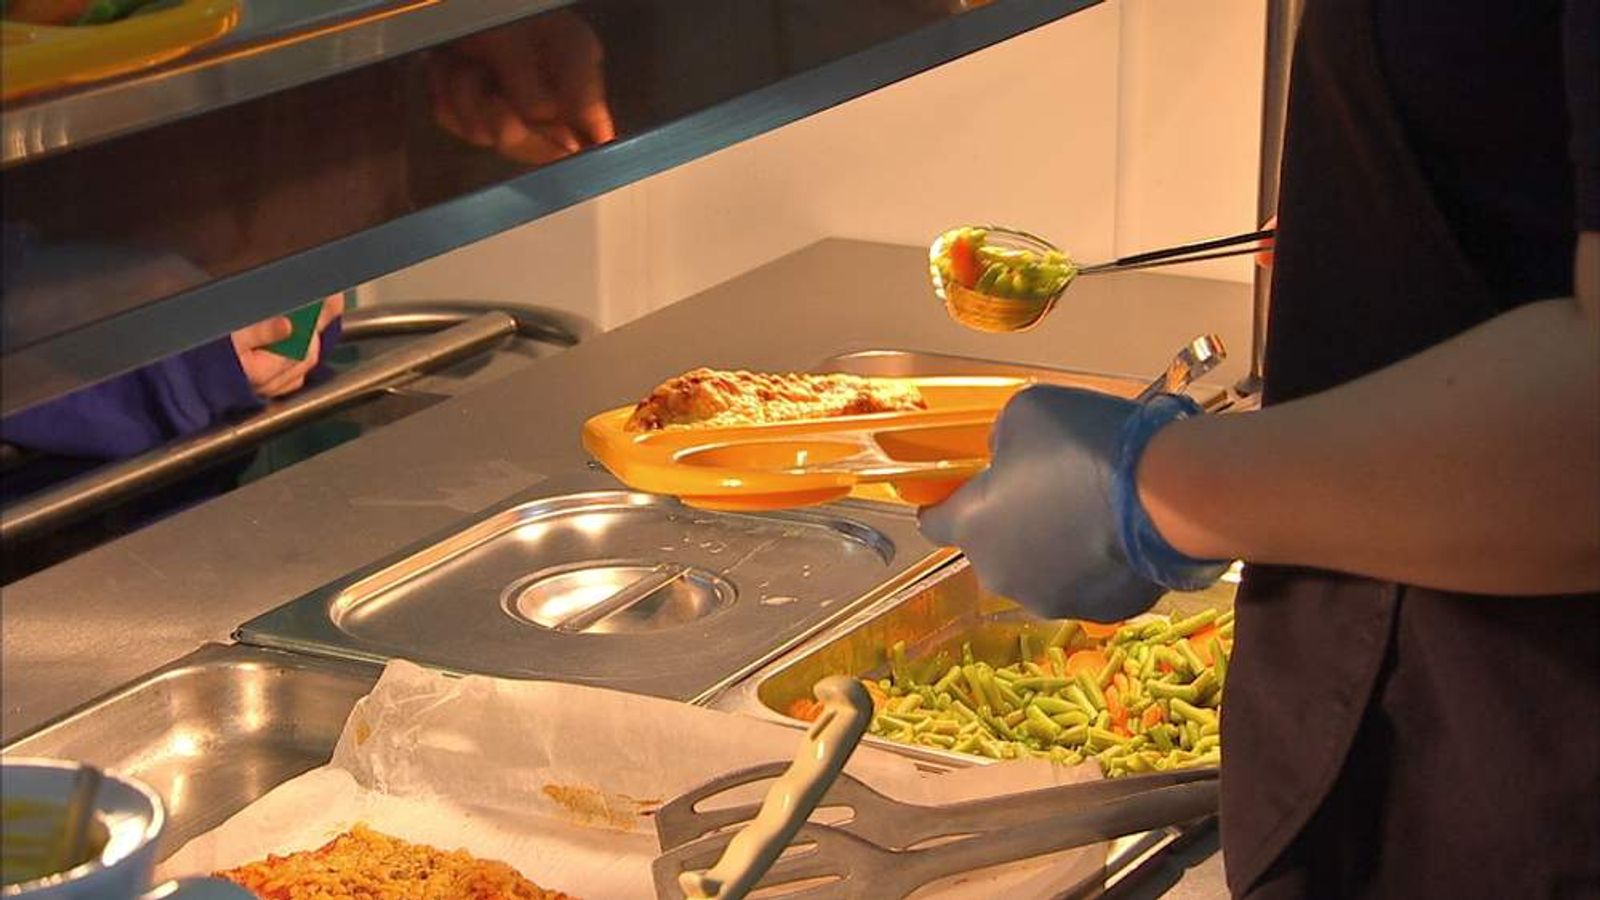 The cost of free school meals could harm education, it has been warned.